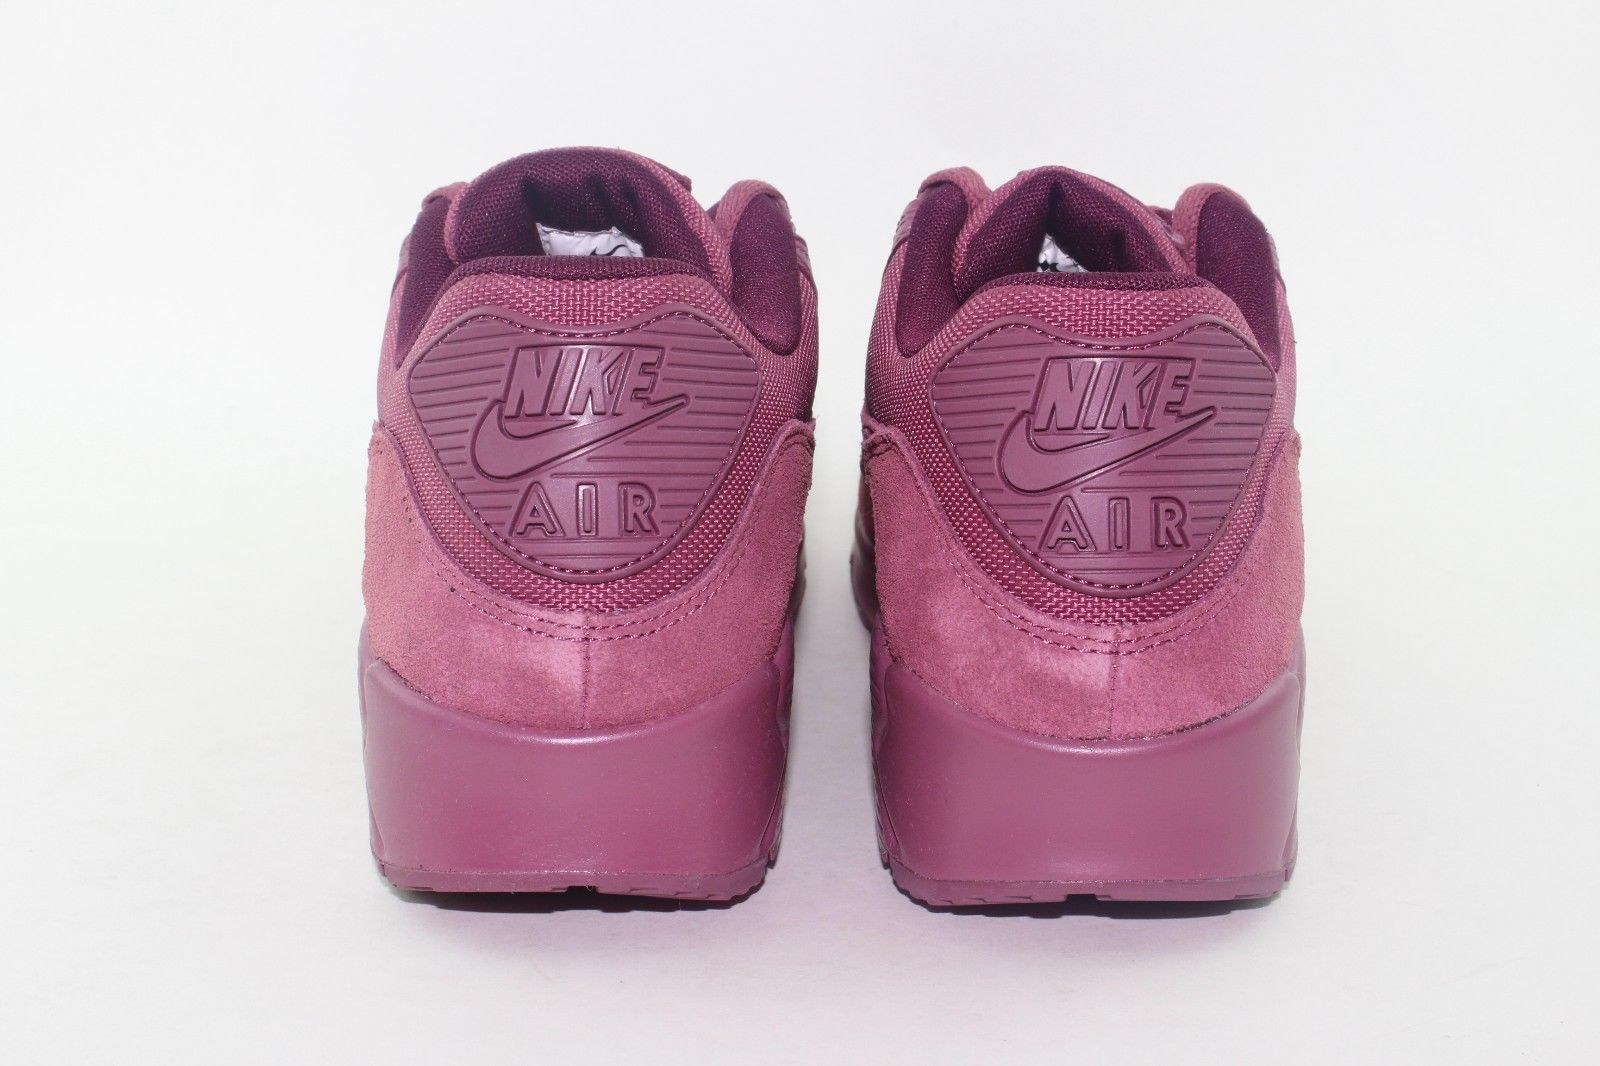 low priced d7bc2 152a6 ... NIKE AIR MAX 90 PREMIUM MEN SIZE 7.5 VINTAGE WINE BORDEAUX NEW SUEDE  LEATHER ...